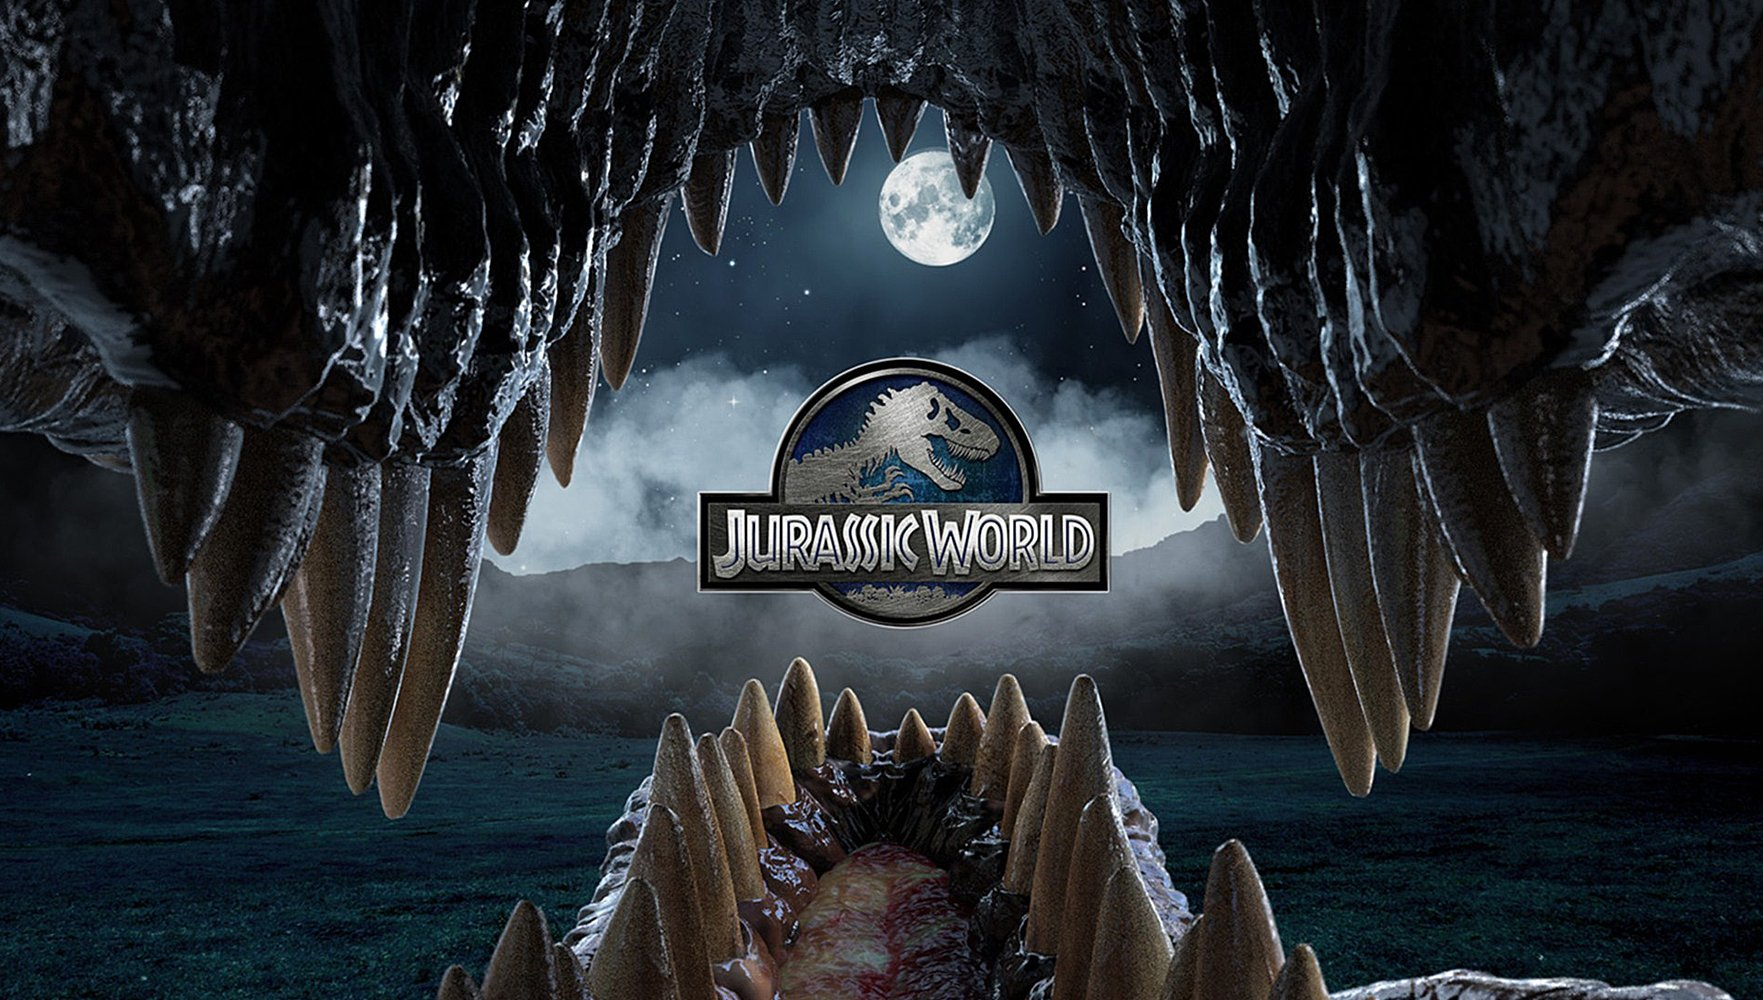 Jurassic World - Critique du film de Colin Trevorrow